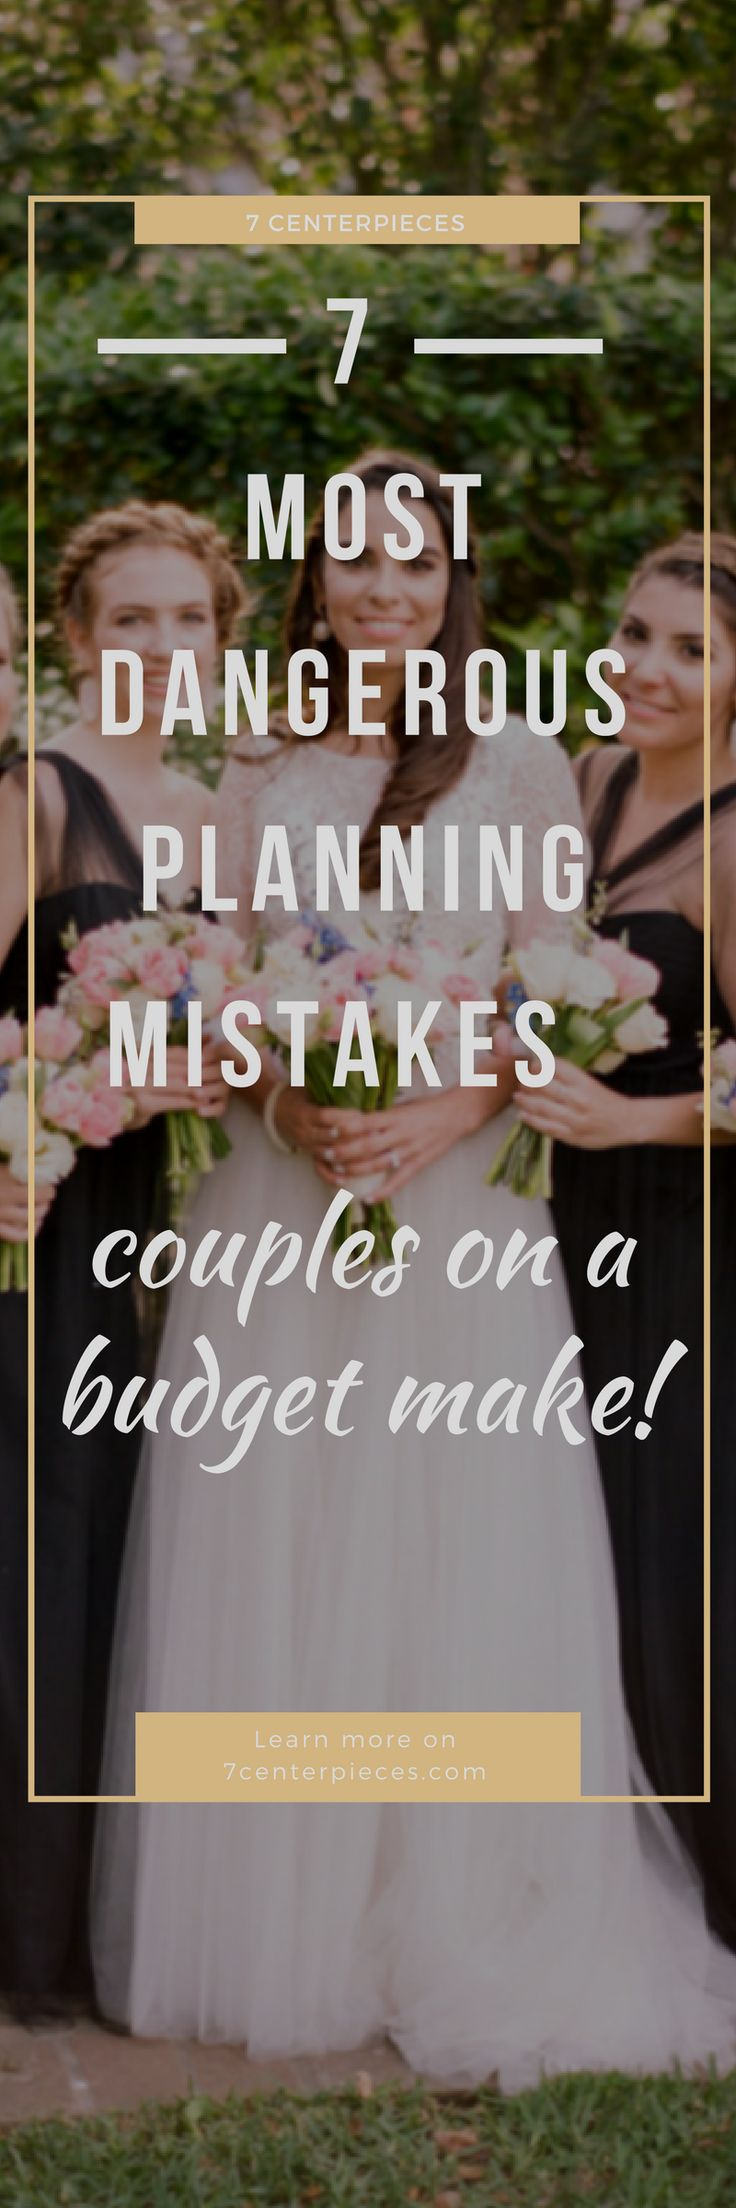 wedding planning checklist spreadsheet free%0A   Most Dangerous Planning Mistakes Couples on a Budget Make